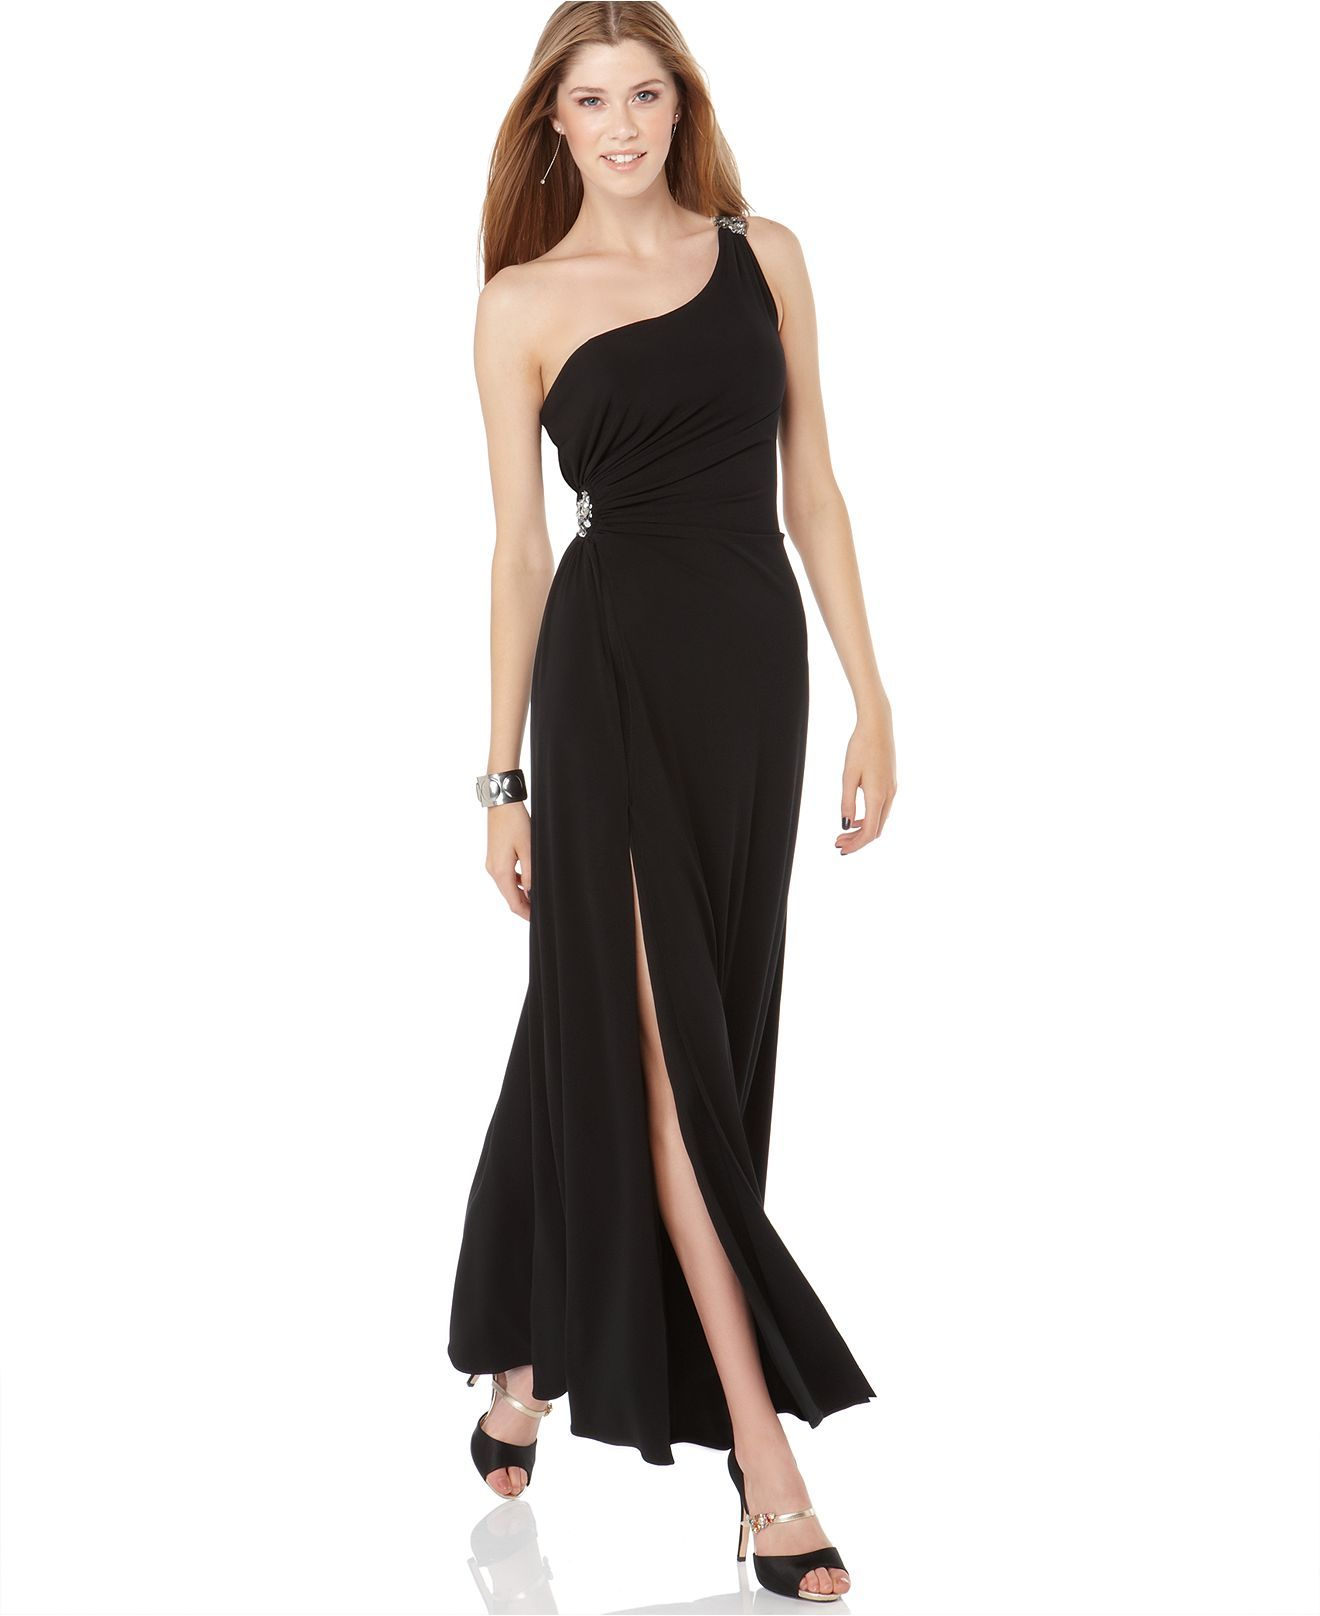 Hailey logan dress one shoulder beaded maxi gown womens dresses hailey logan dress one shoulder beaded maxi gown womens dresses macys ombrellifo Images